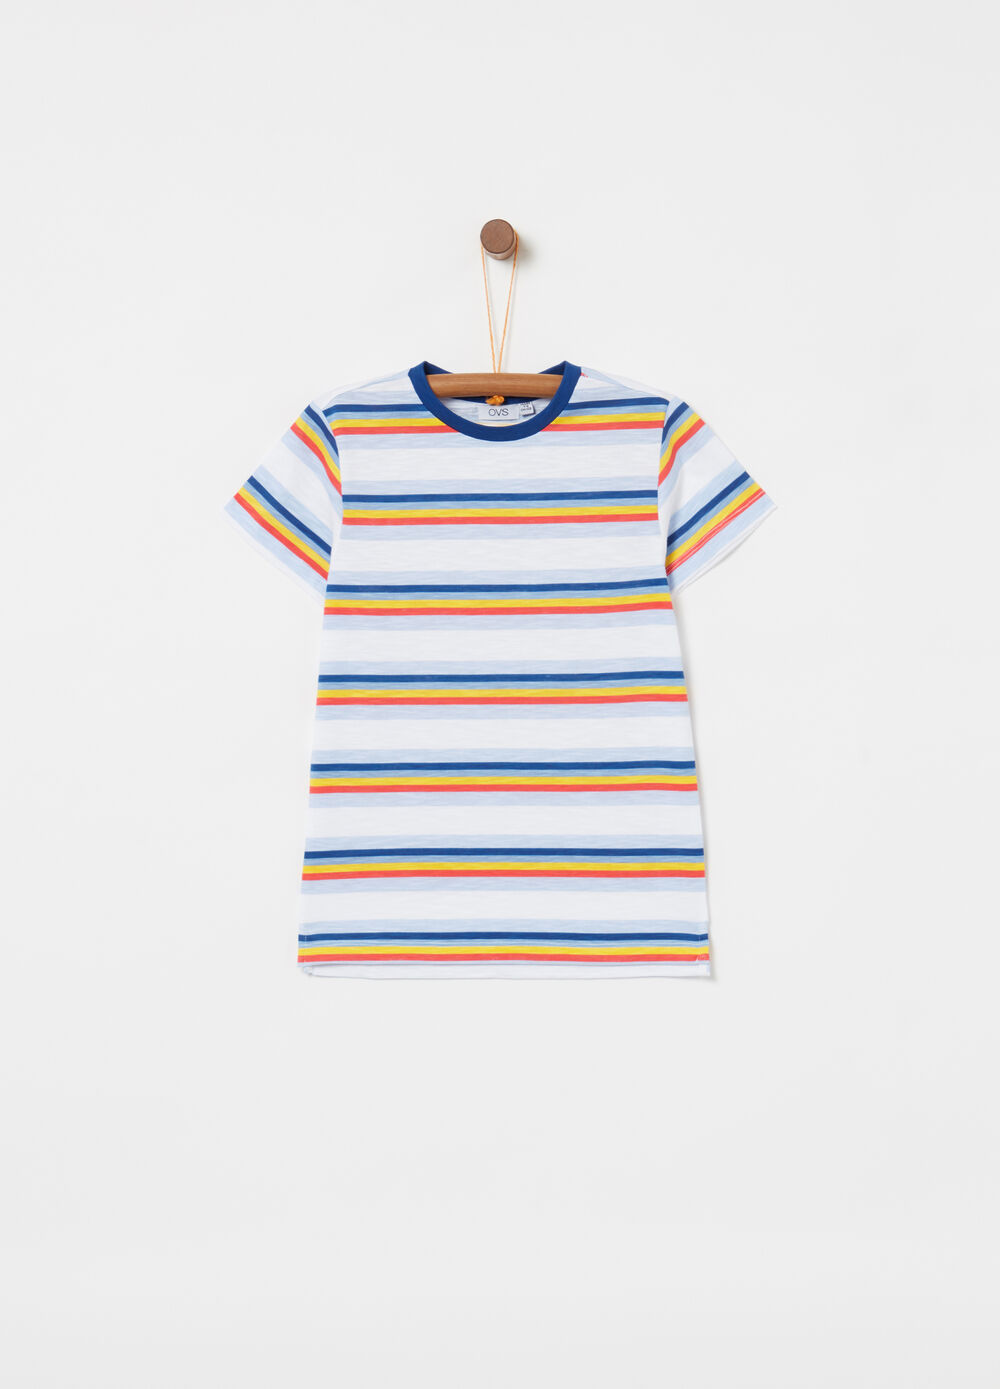 T-shirt in iridescent biocotton with striped print